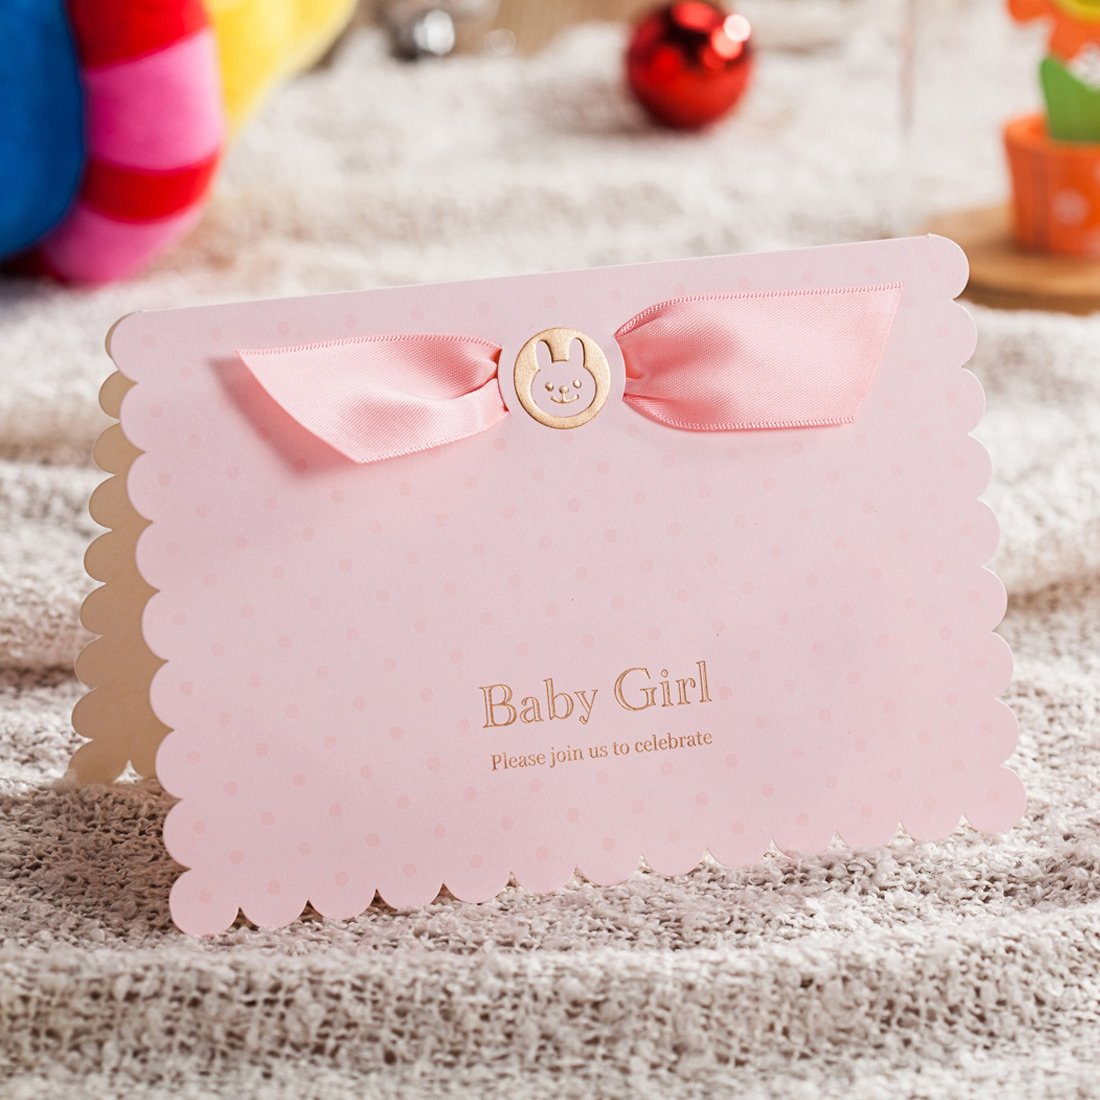 100X WISHMADE 3D Pink Baby Shower Invitation Card with Bear and Cartoon Car Design, Blank Printable Birthday Dinner Party Invites Kits for Little Girl with Envelopes CW5301